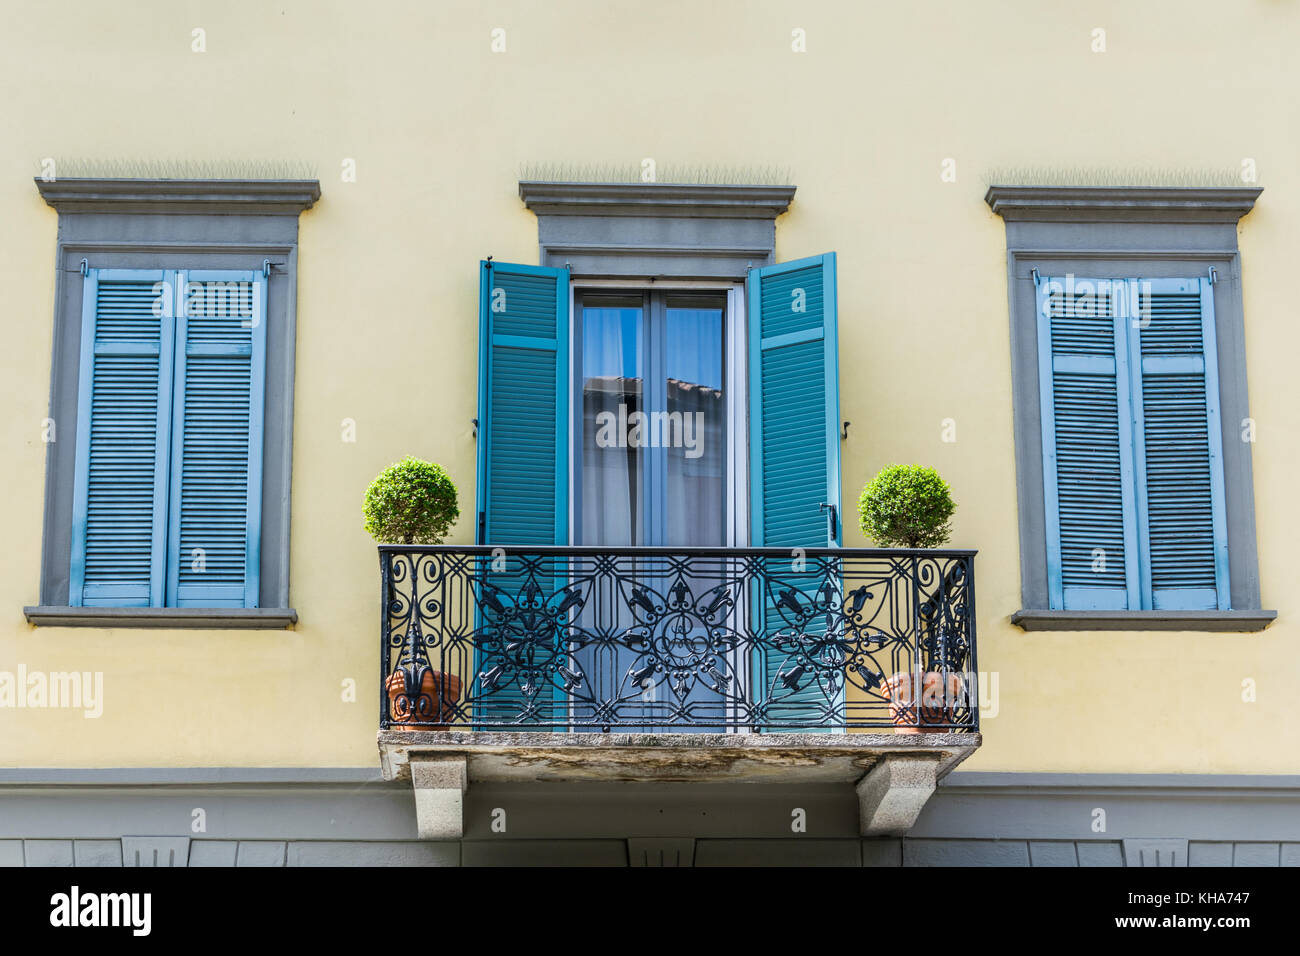 Italian balcony stock photos italian balcony stock for Balcony in italian